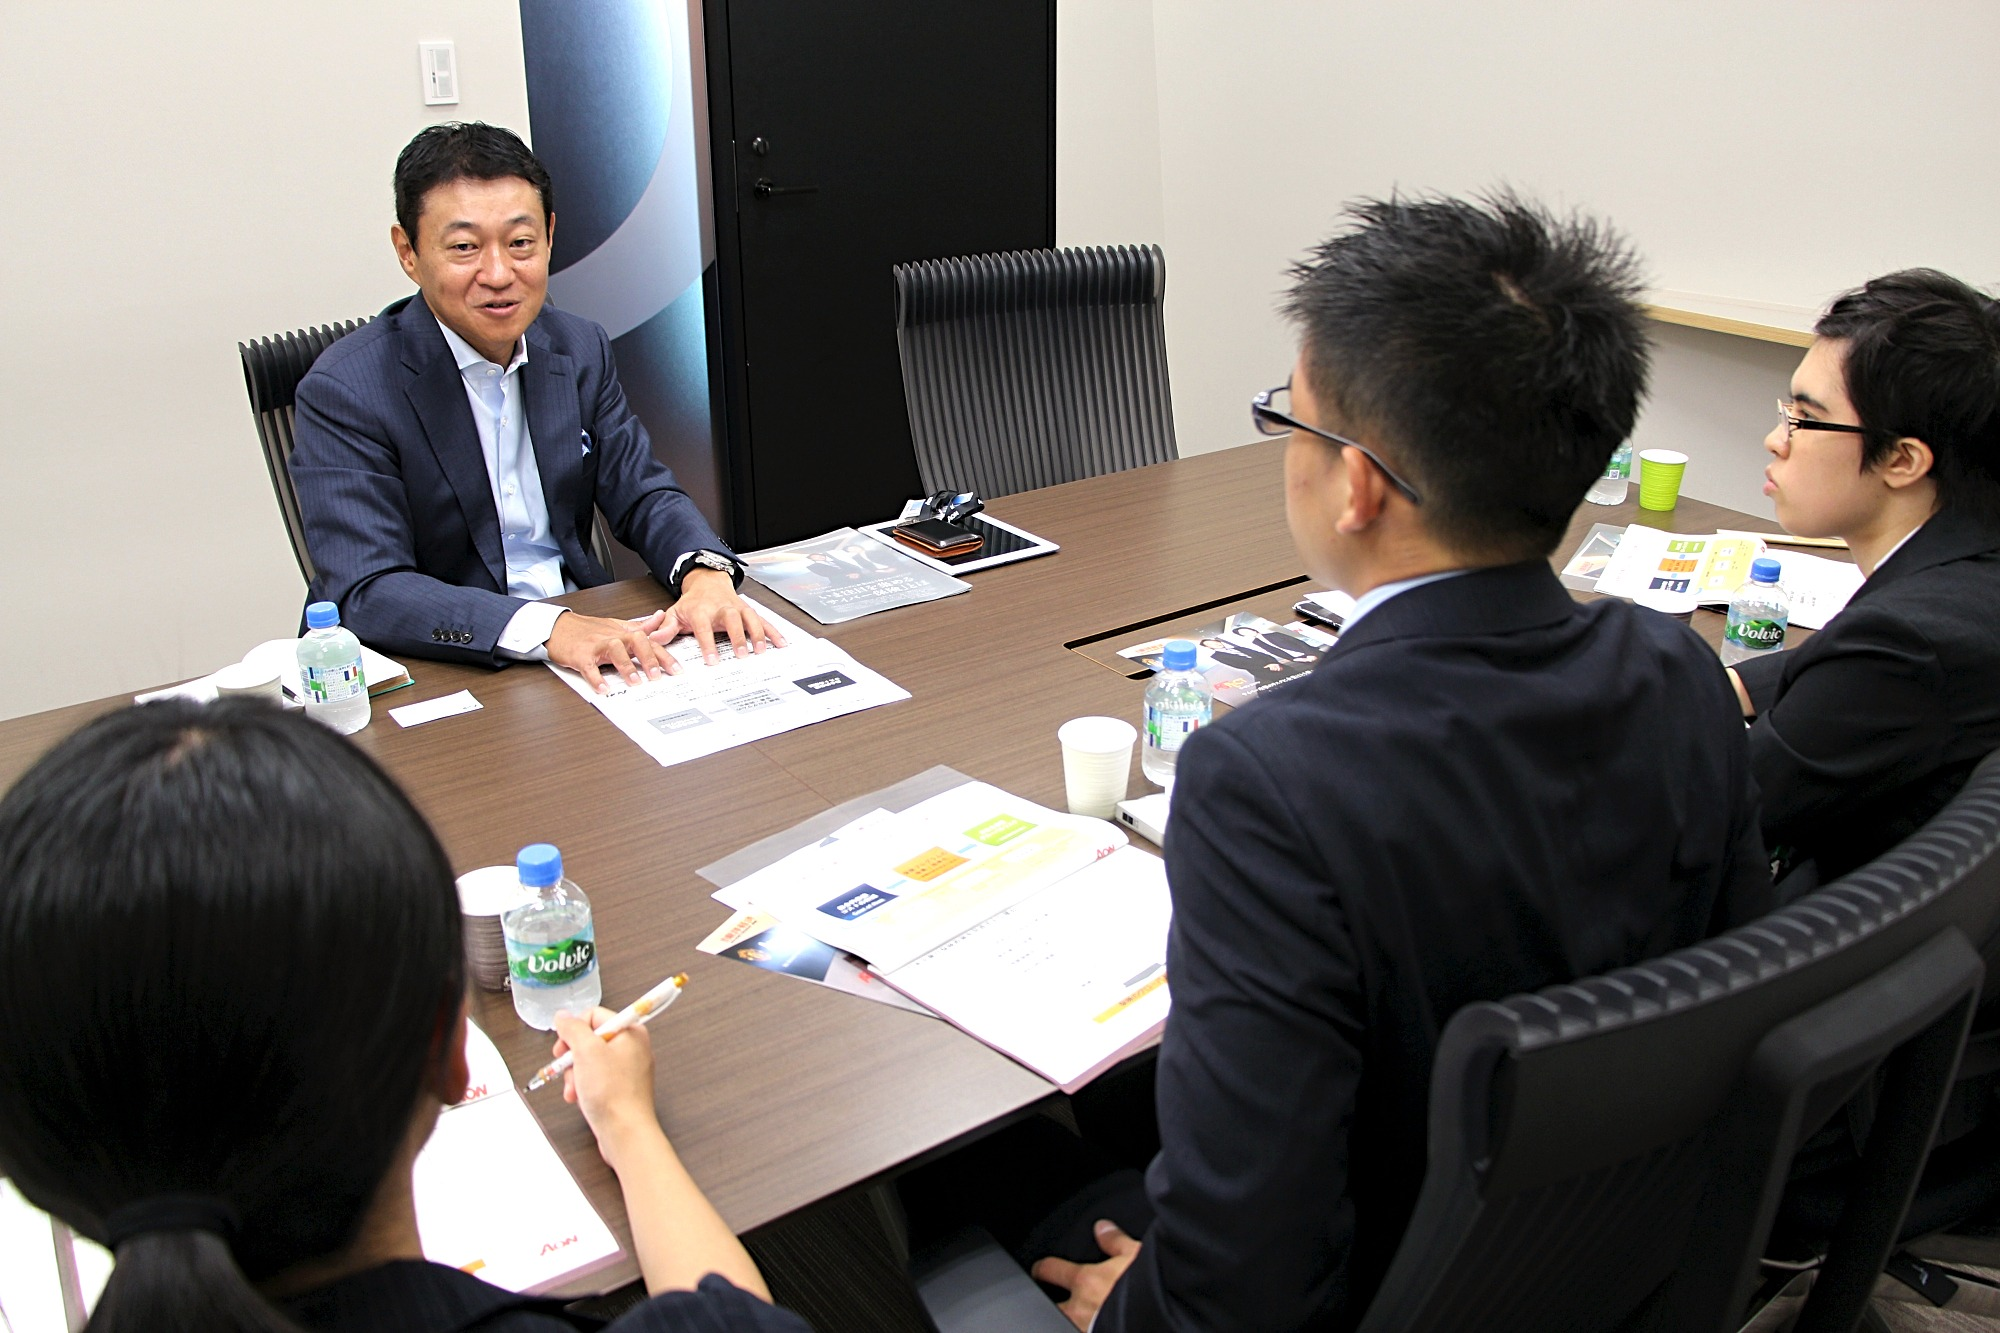 Interview: Mr. Yamamoto, President & CEO of Aon Japan Ltd.